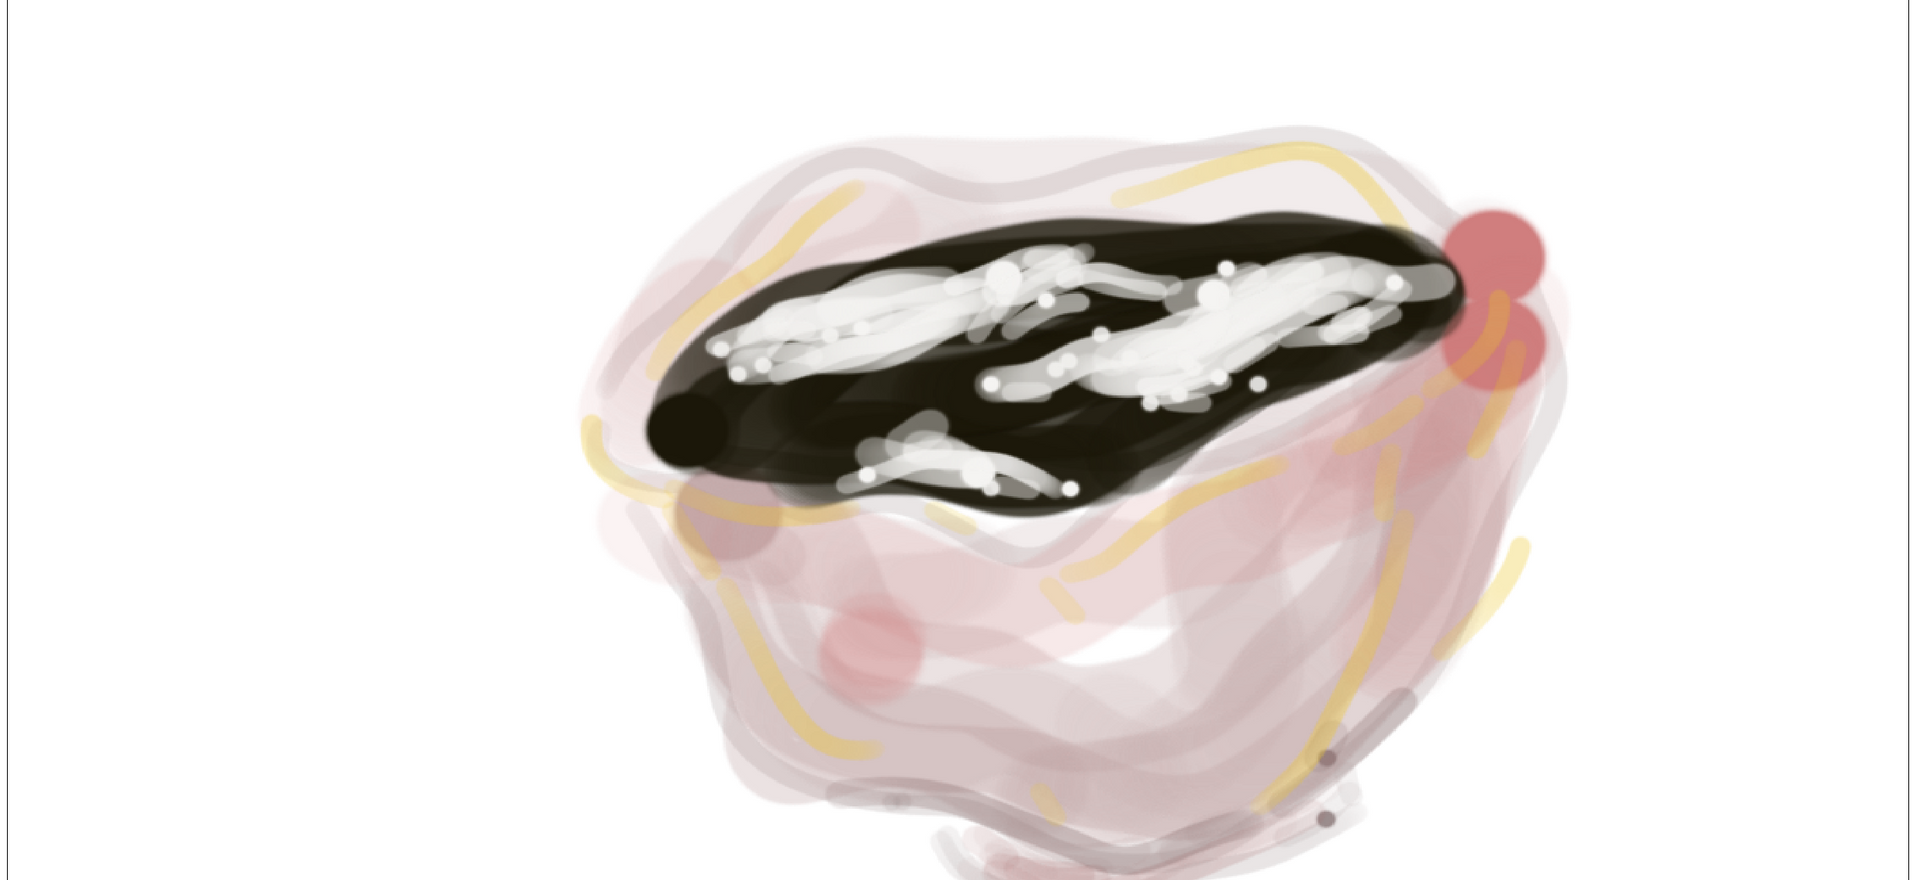 'Night sky with clouds' soup, in ceramic bowl  2019  Digital drawing